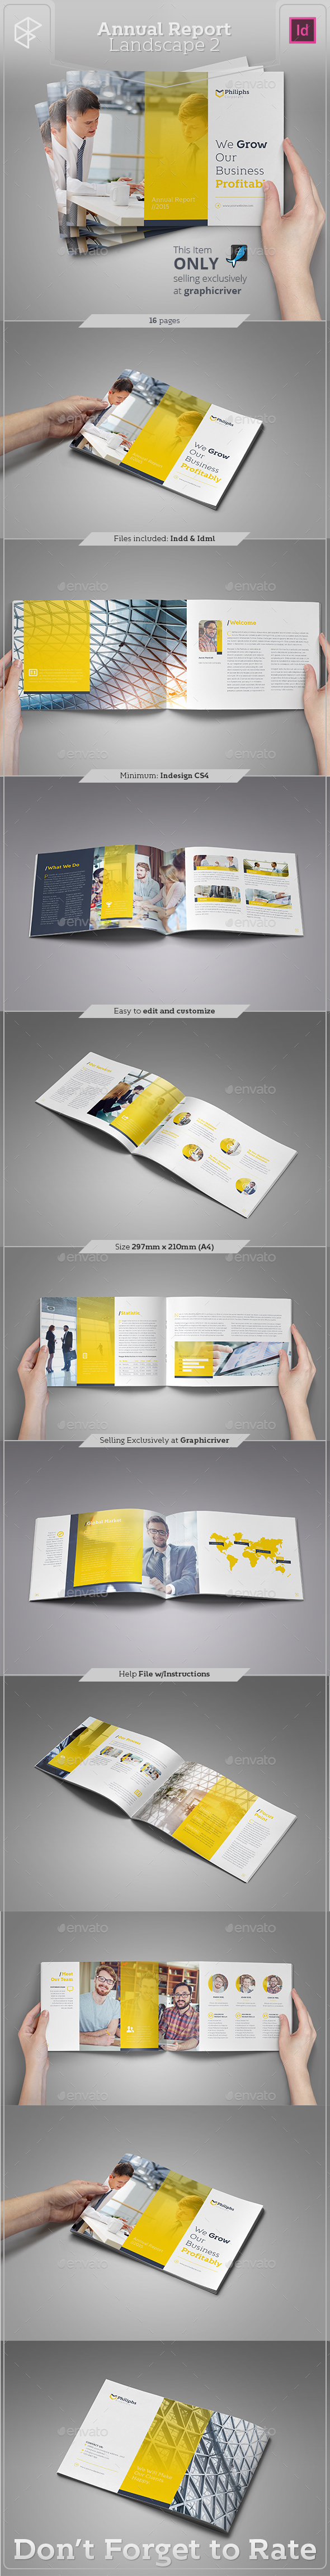 Annual Report Landscape 2 - Corporate Brochures